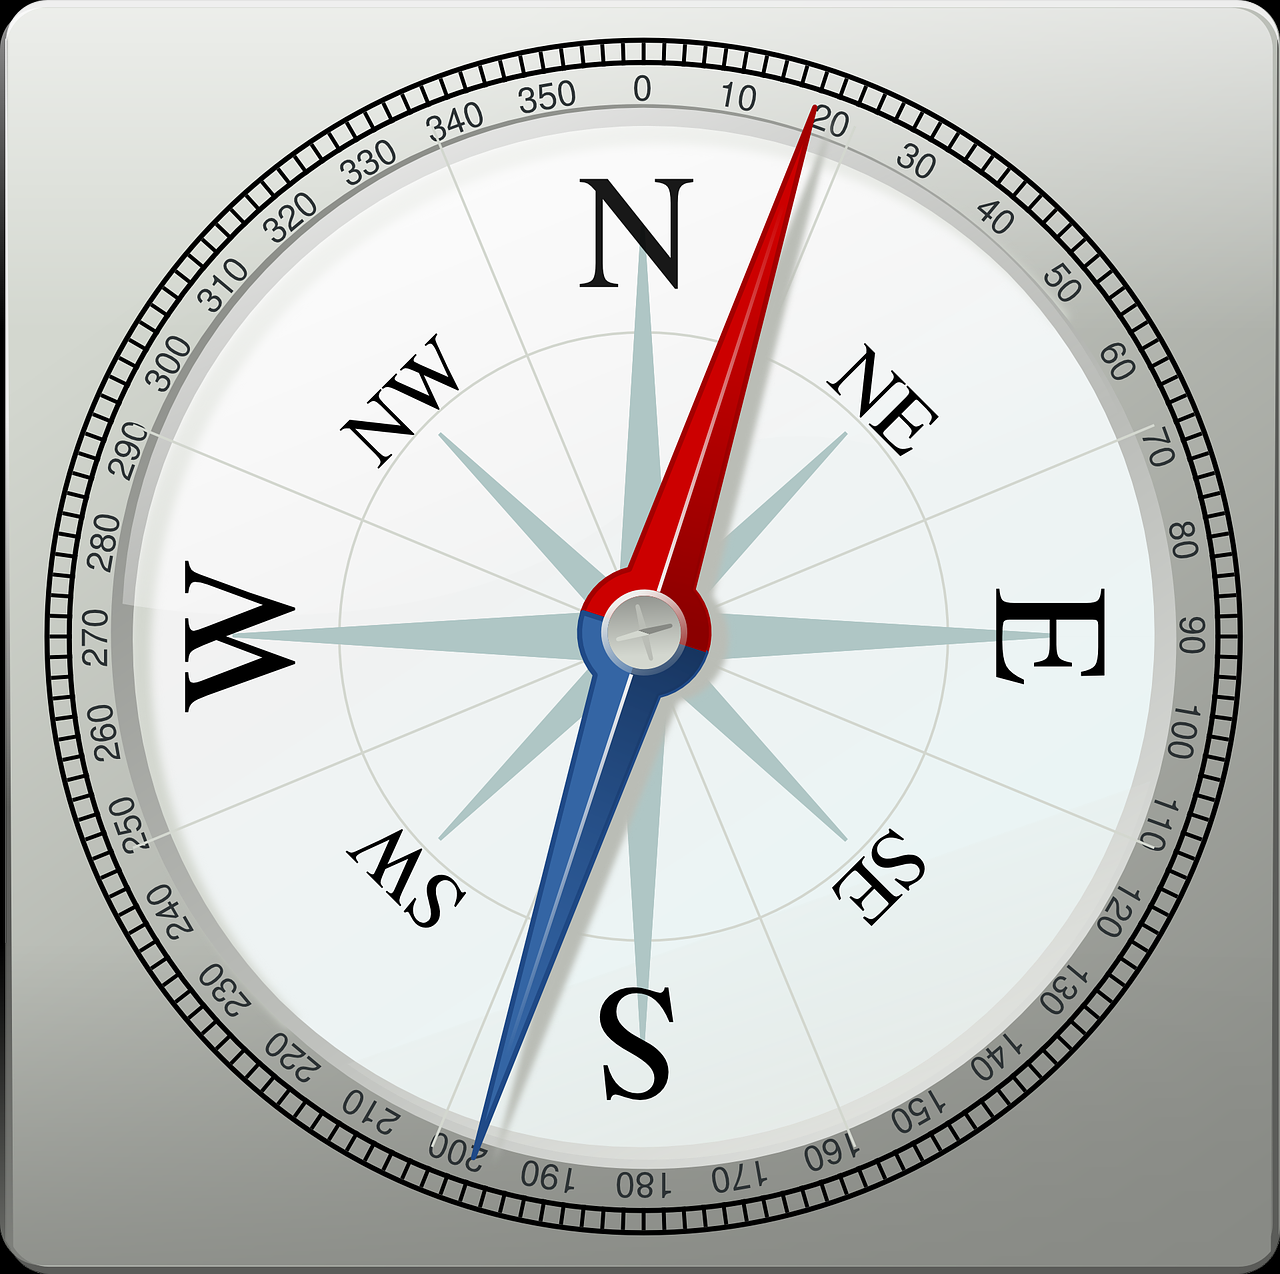 compass-openclips-pixabay-cc0-152124_1280